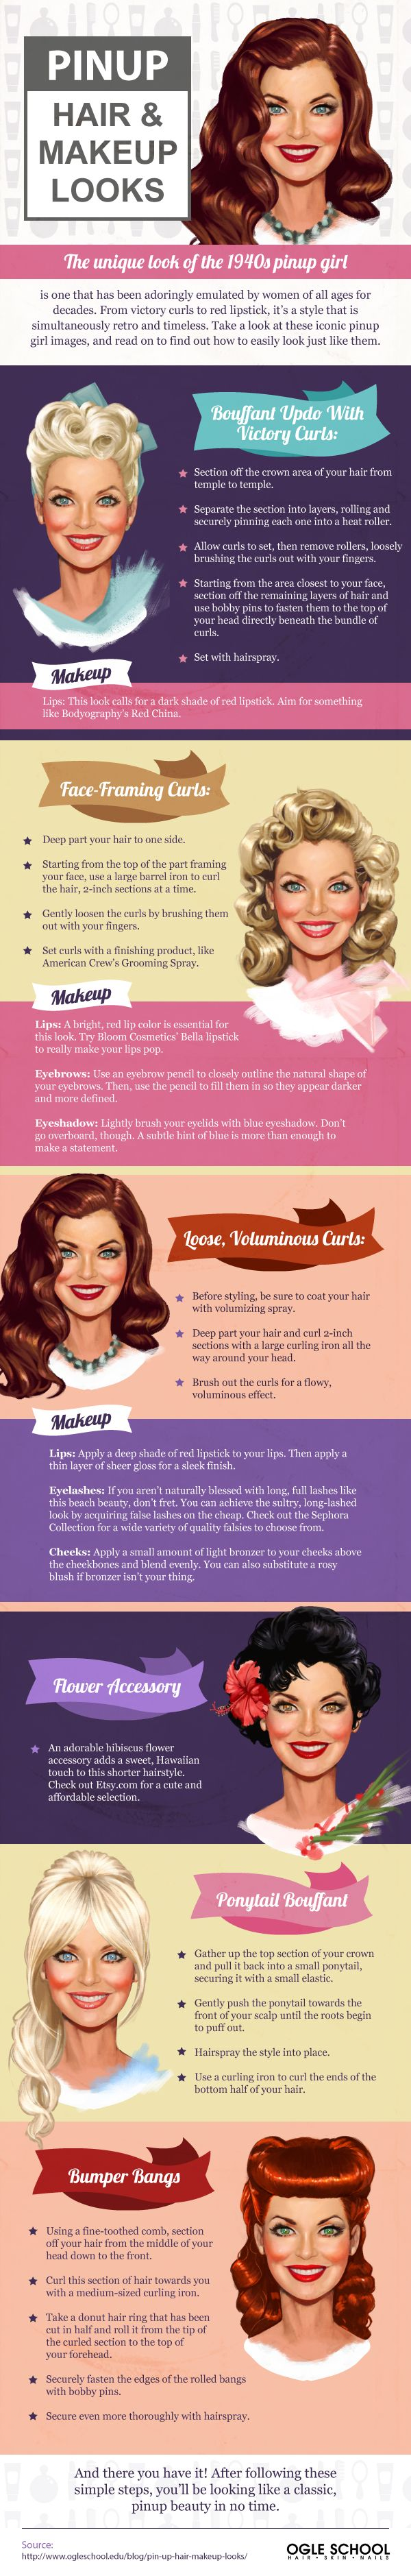 pin-up-hair-makeup-looks